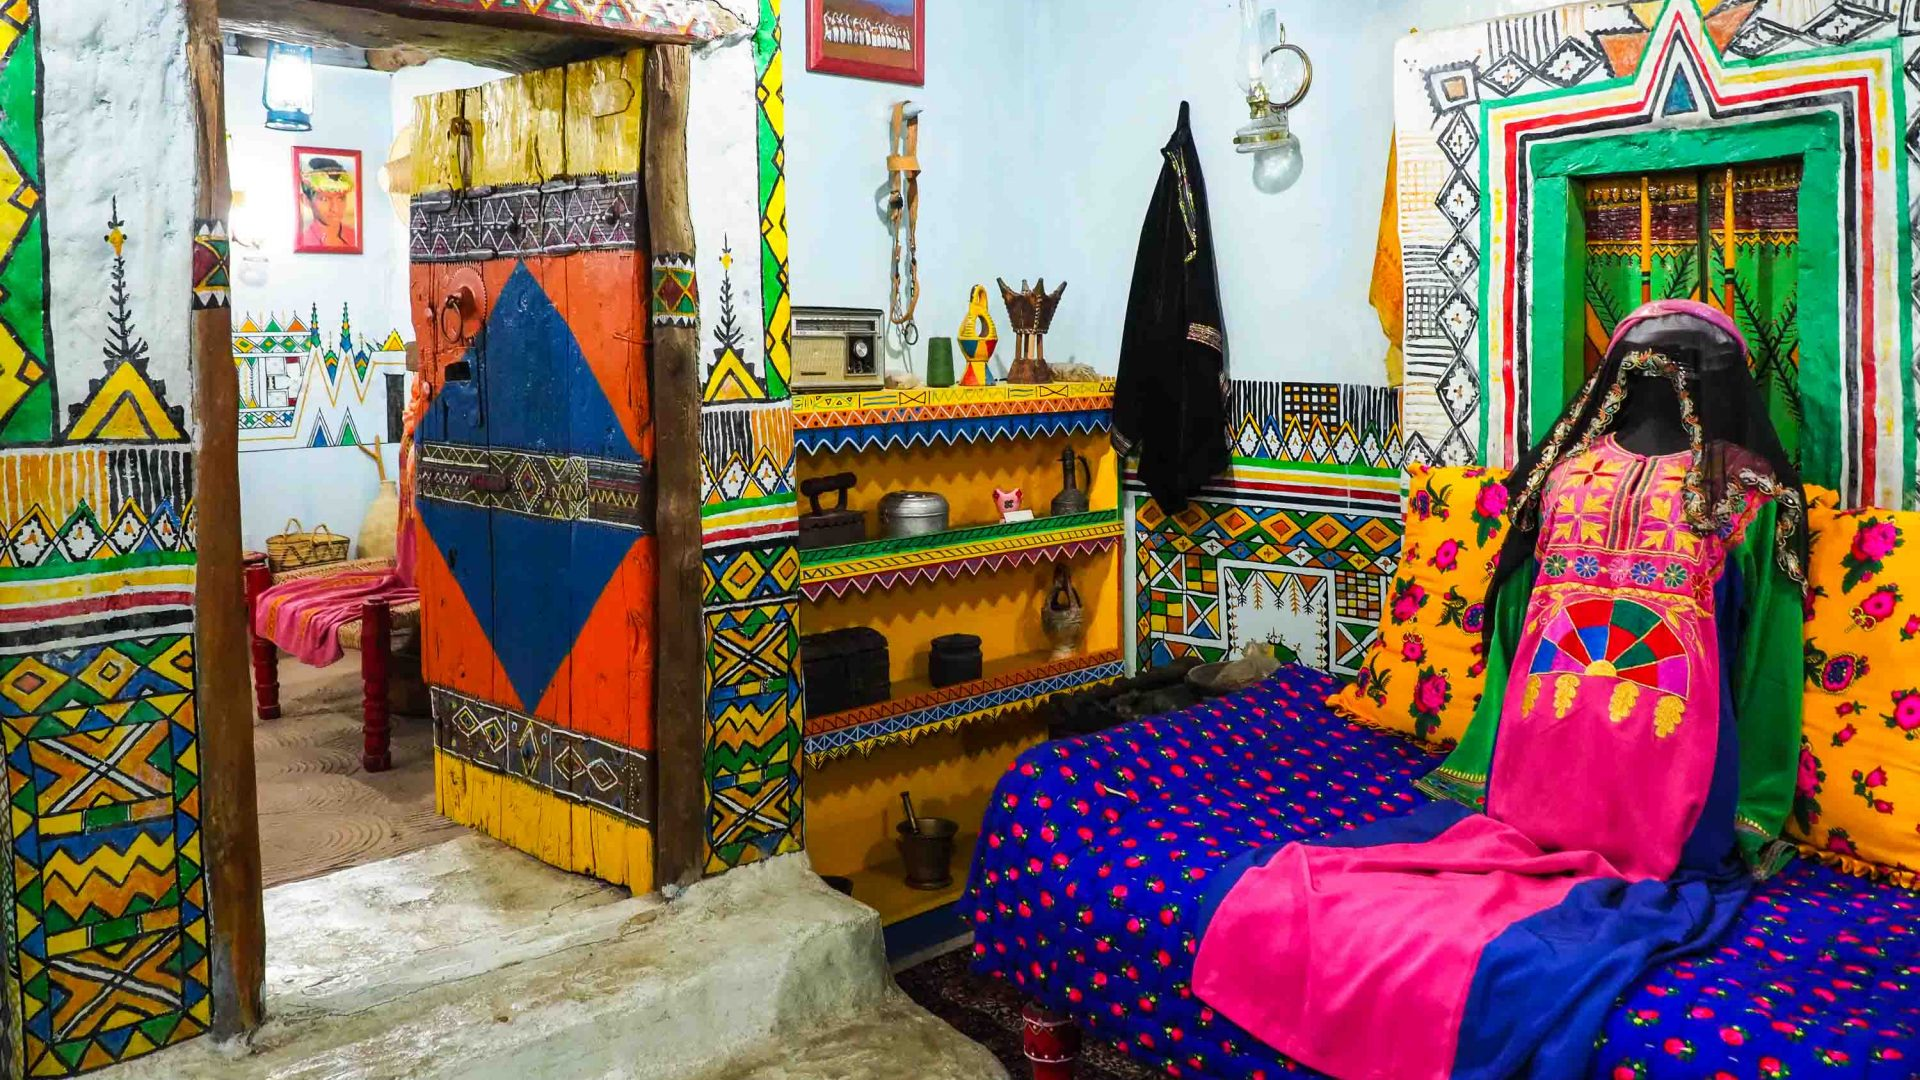 The recreated village homes at Jeddah's Al Tayibat City Museum for International Civilization are beautifully decorated.